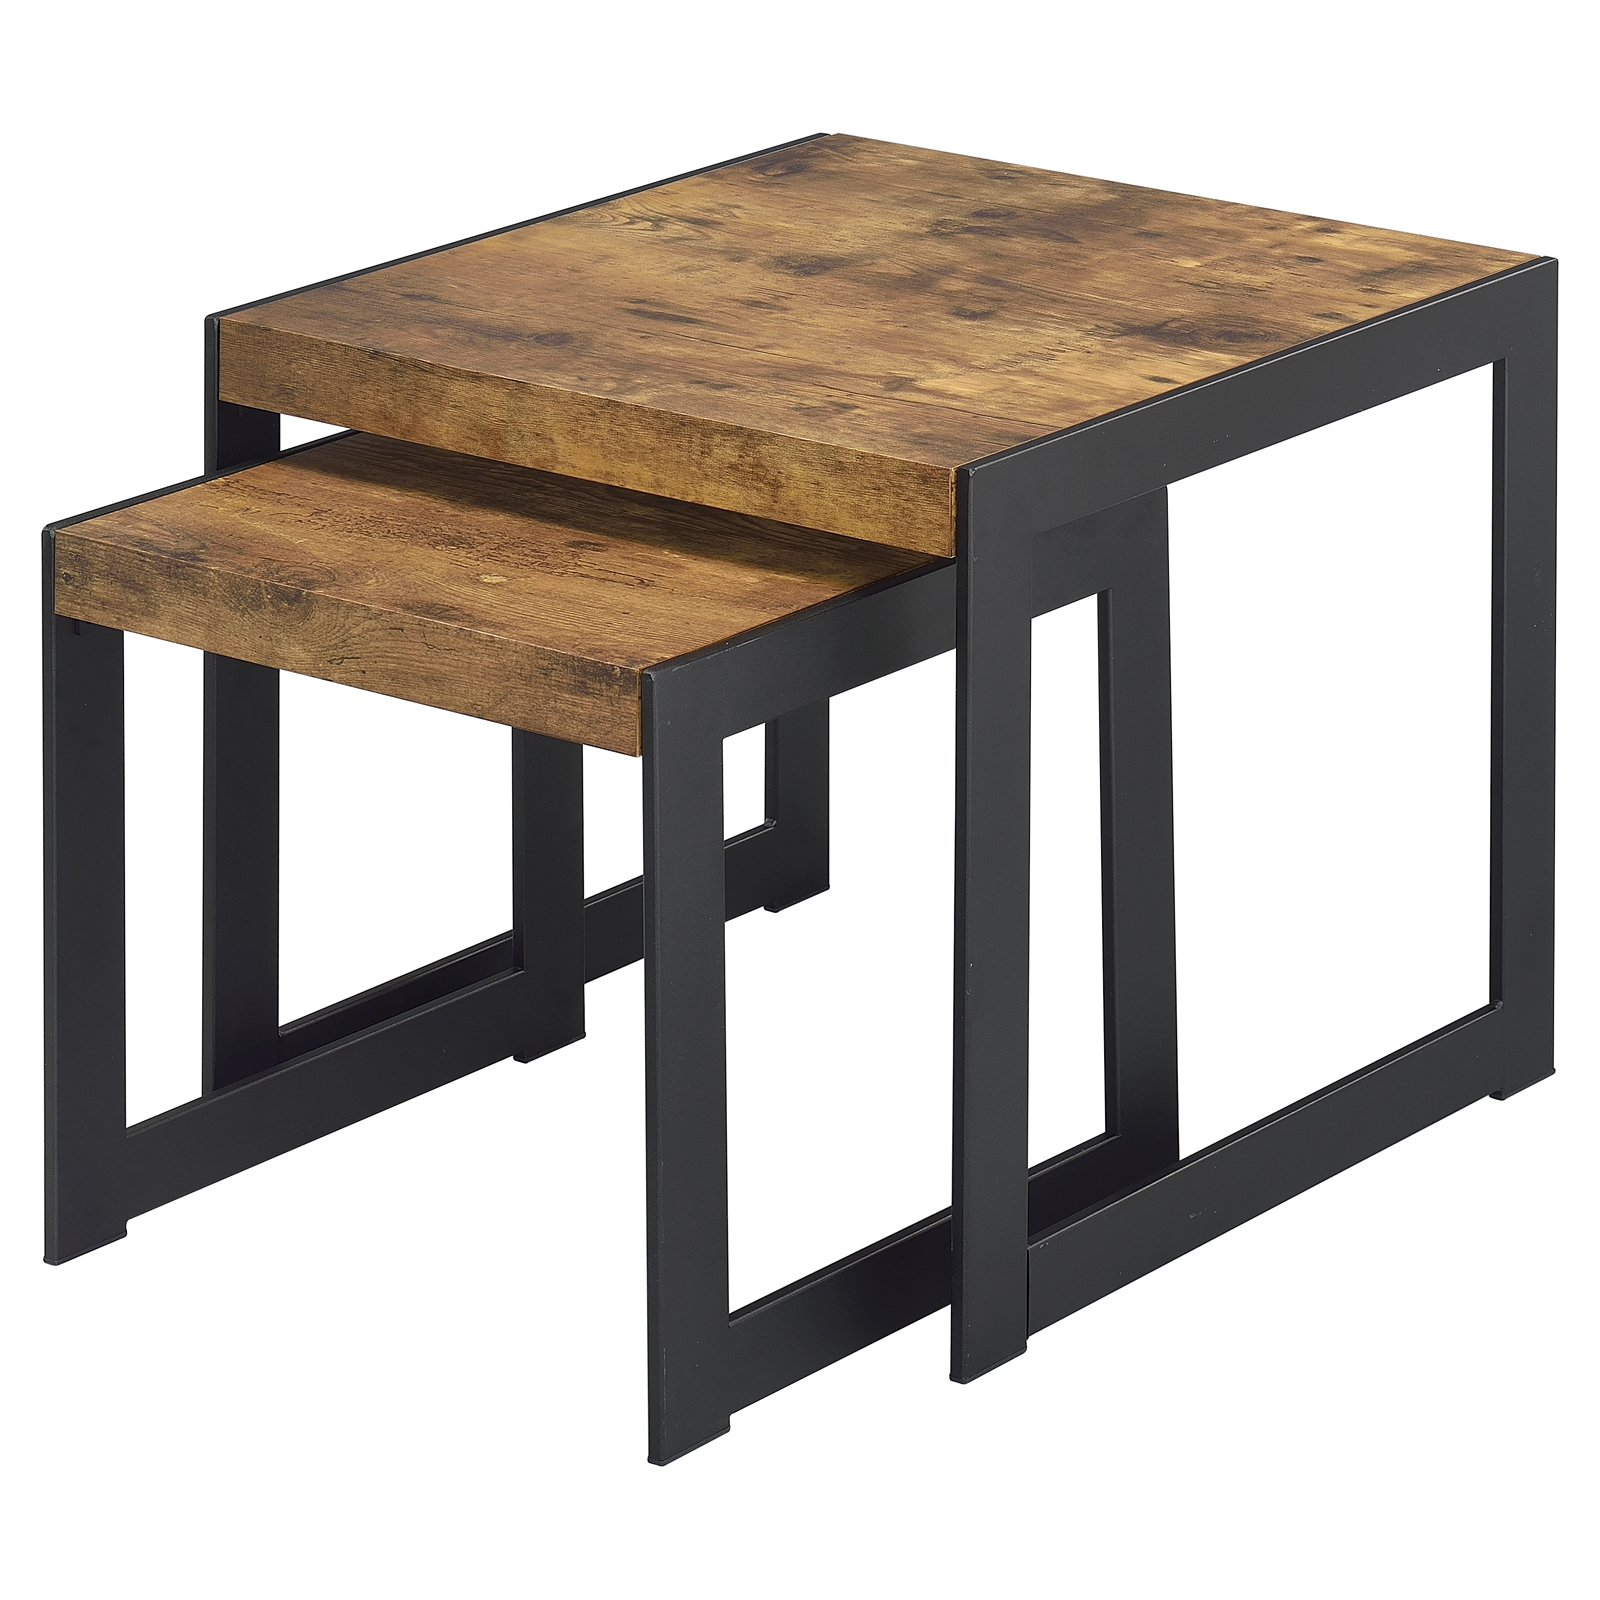 Fox Hill Trading Millenial Industrial Nesting Side Tables - Set of 2